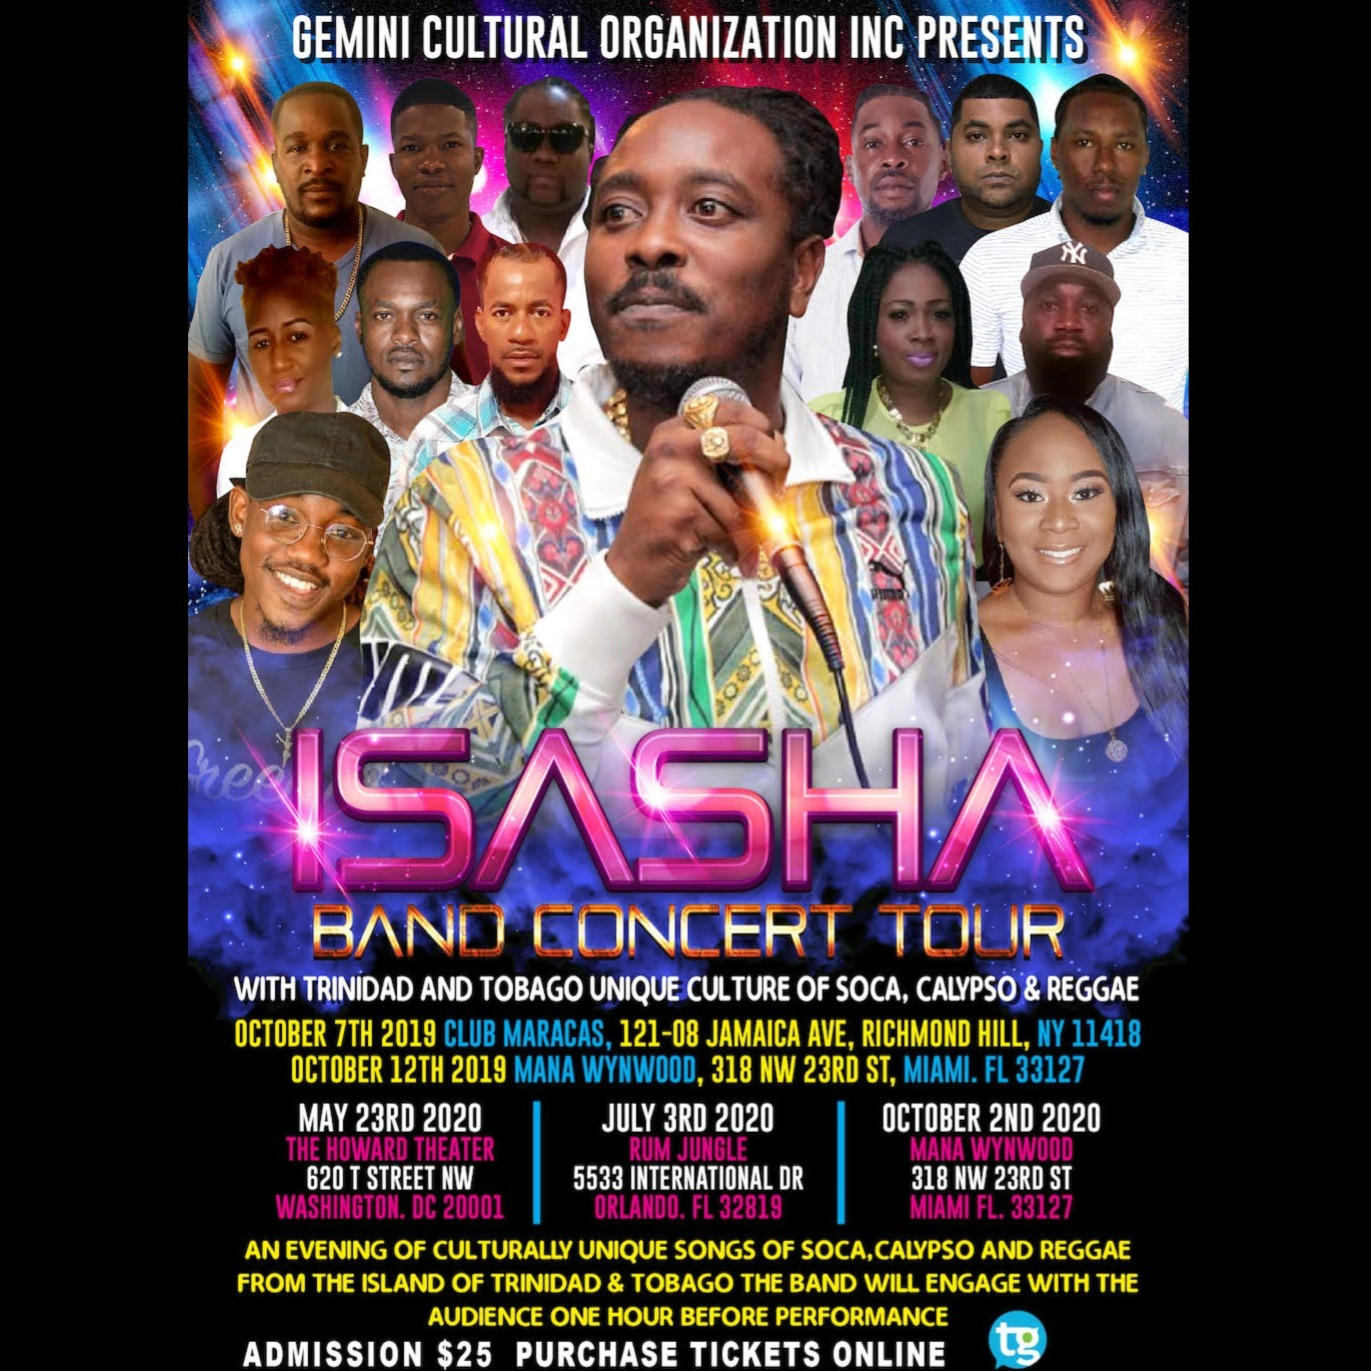 ISASHA Band Concert Tour Washington DC 2020